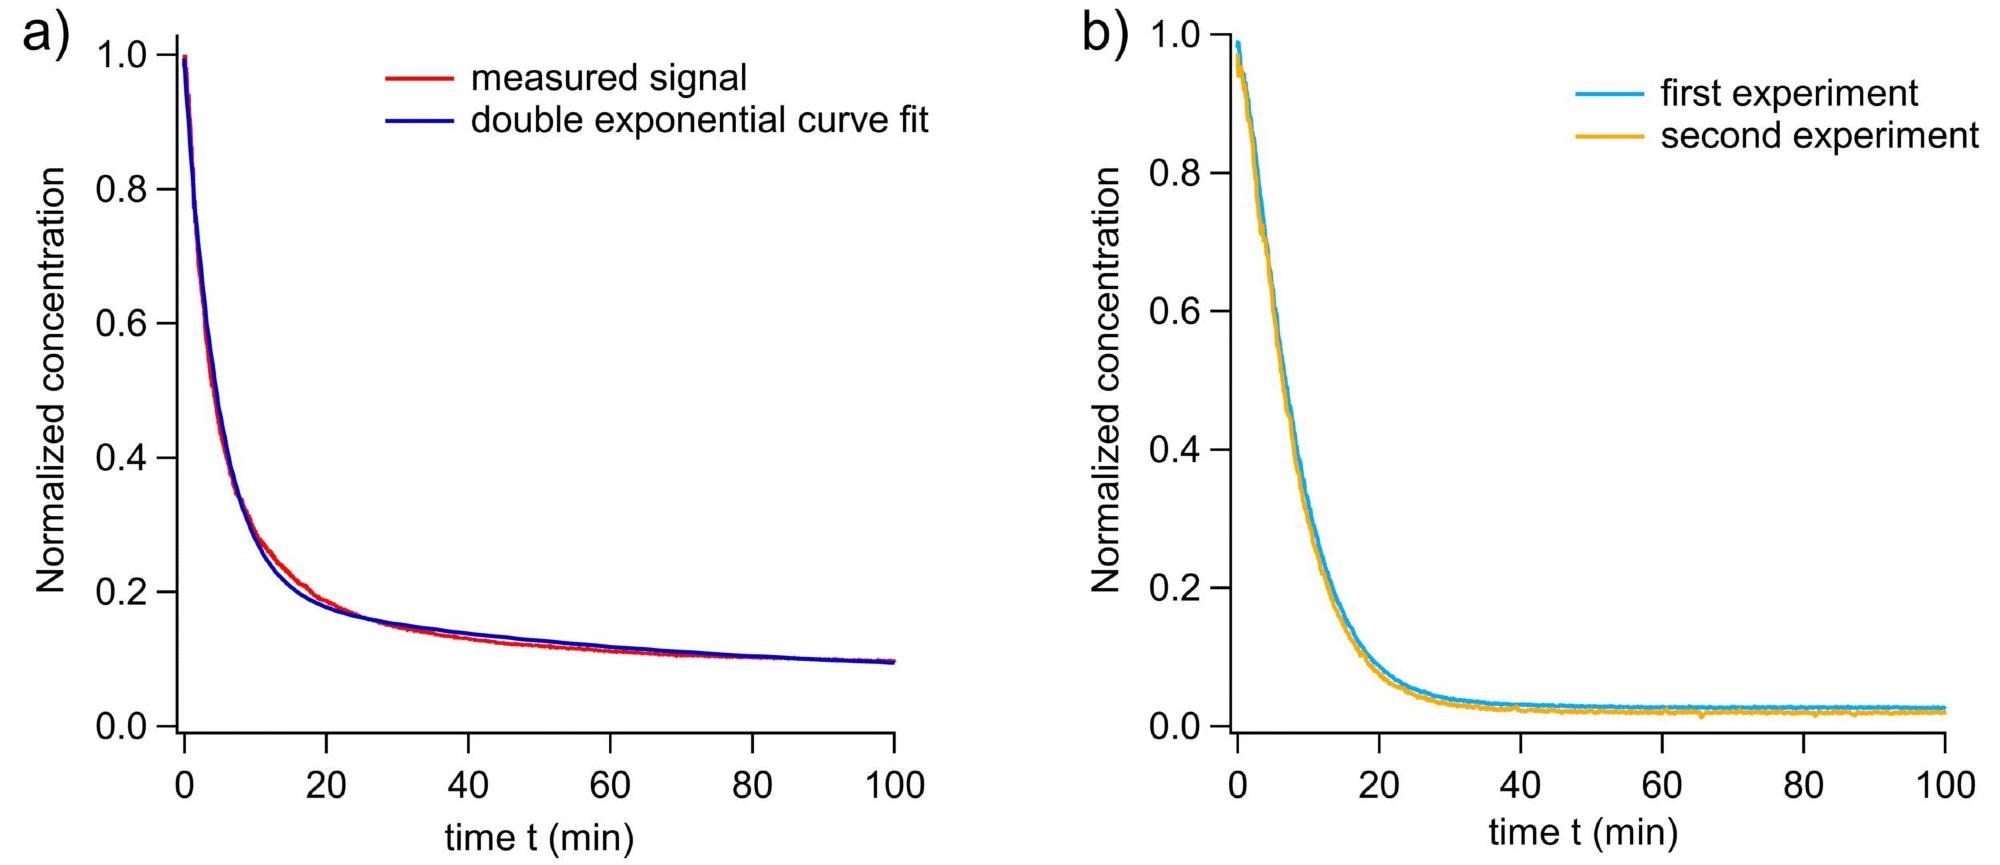 (a) Normalized concentration C(t) of nitric acid (red) and its double exponential fit (blue). (b) Normalized concentration of acetic acid after deposition of 1 µg (first experiment) and 0.15 µg (second experiment), showing the reproducibility of the system.